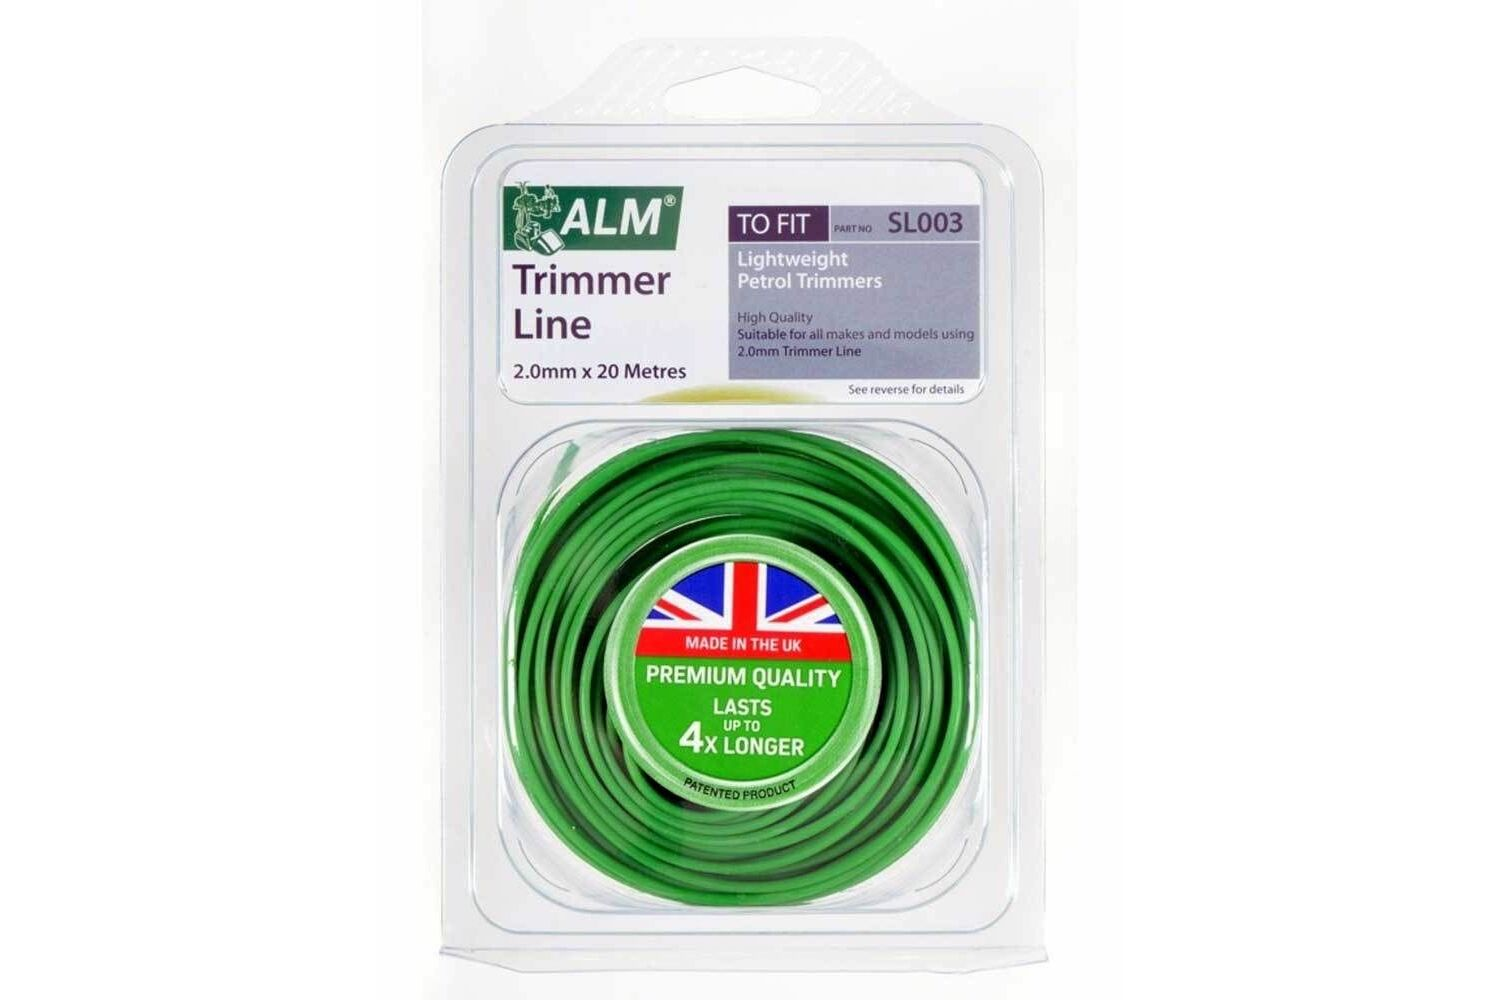 ALM SL001 1.3mm Lightweight Replacement Electric Strimmer Trimmer Line 30m